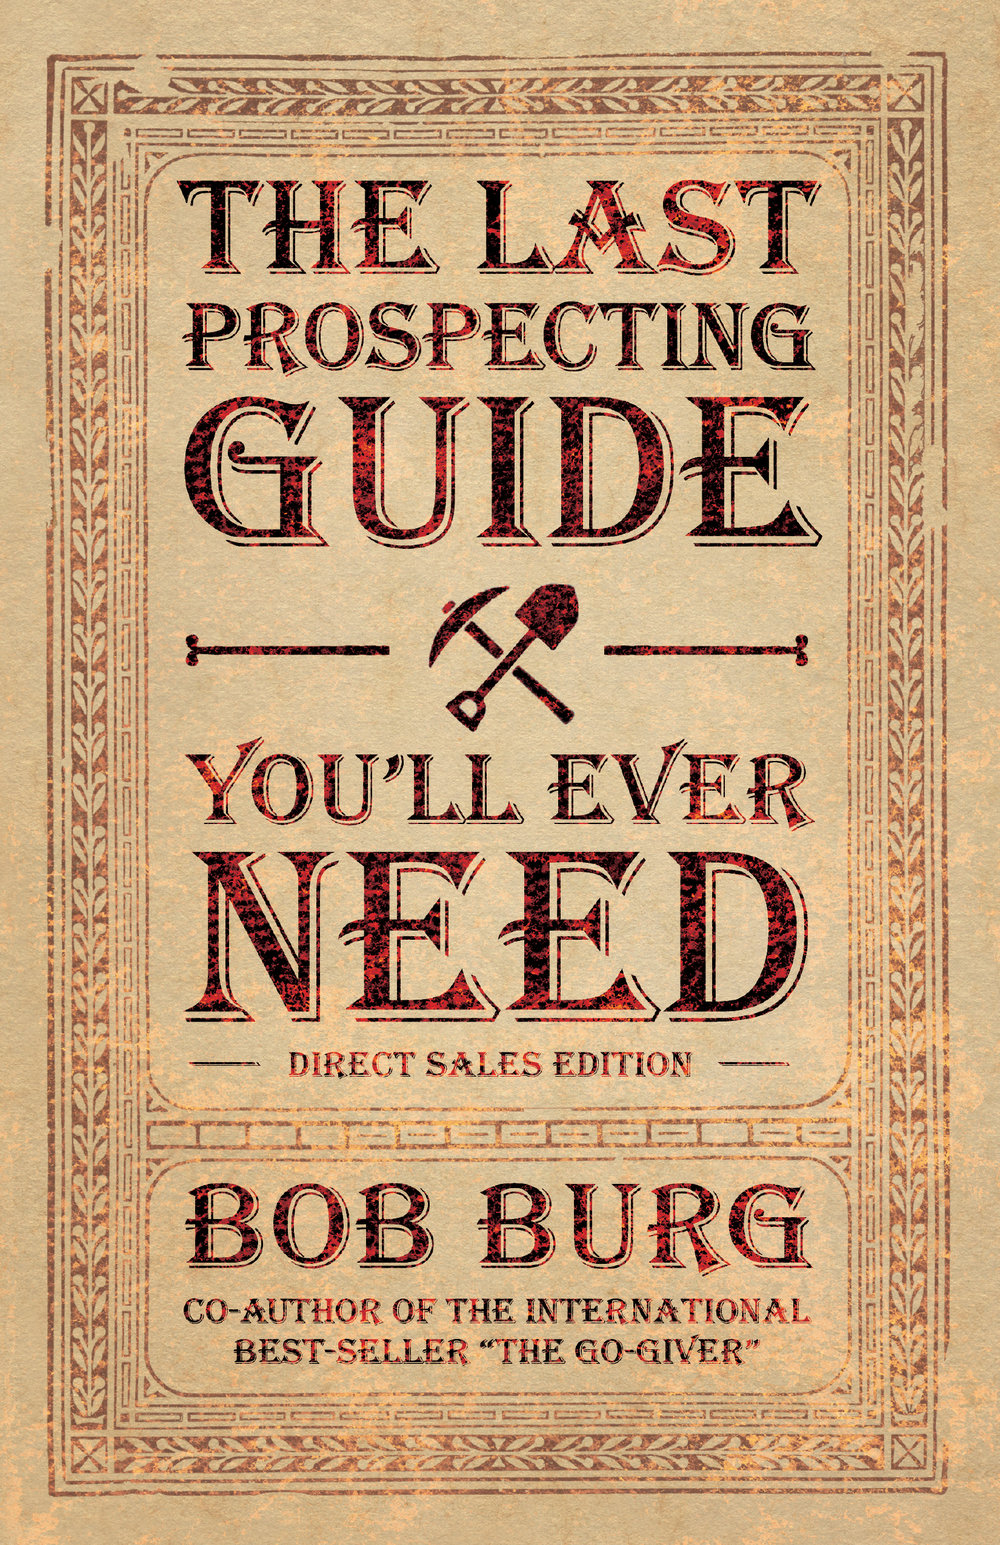 The Last Prospecting Guide You'll Ever Need - Bob Burg